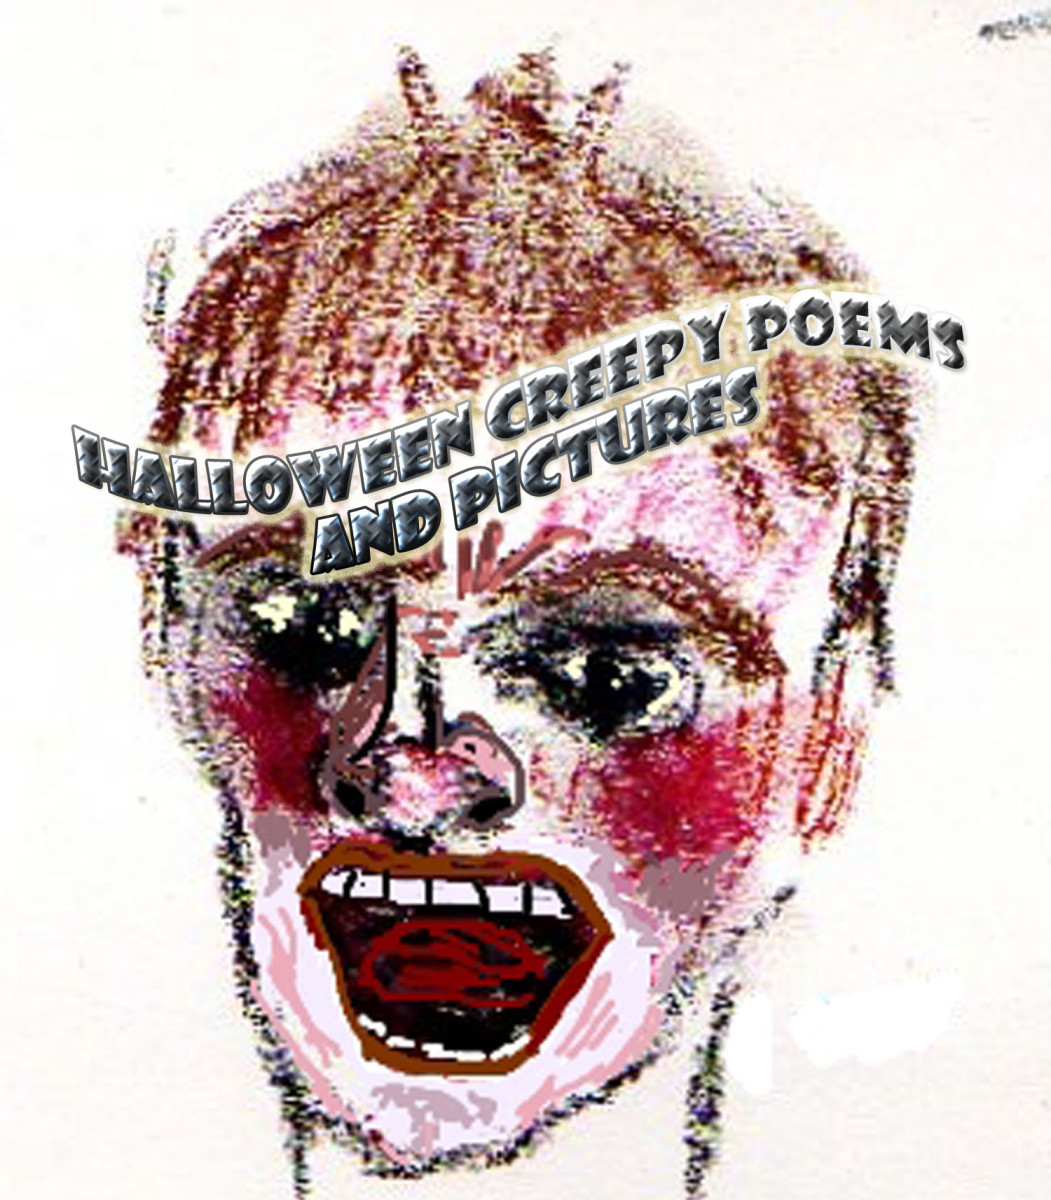 Halloween Creepy Poems and Pictures